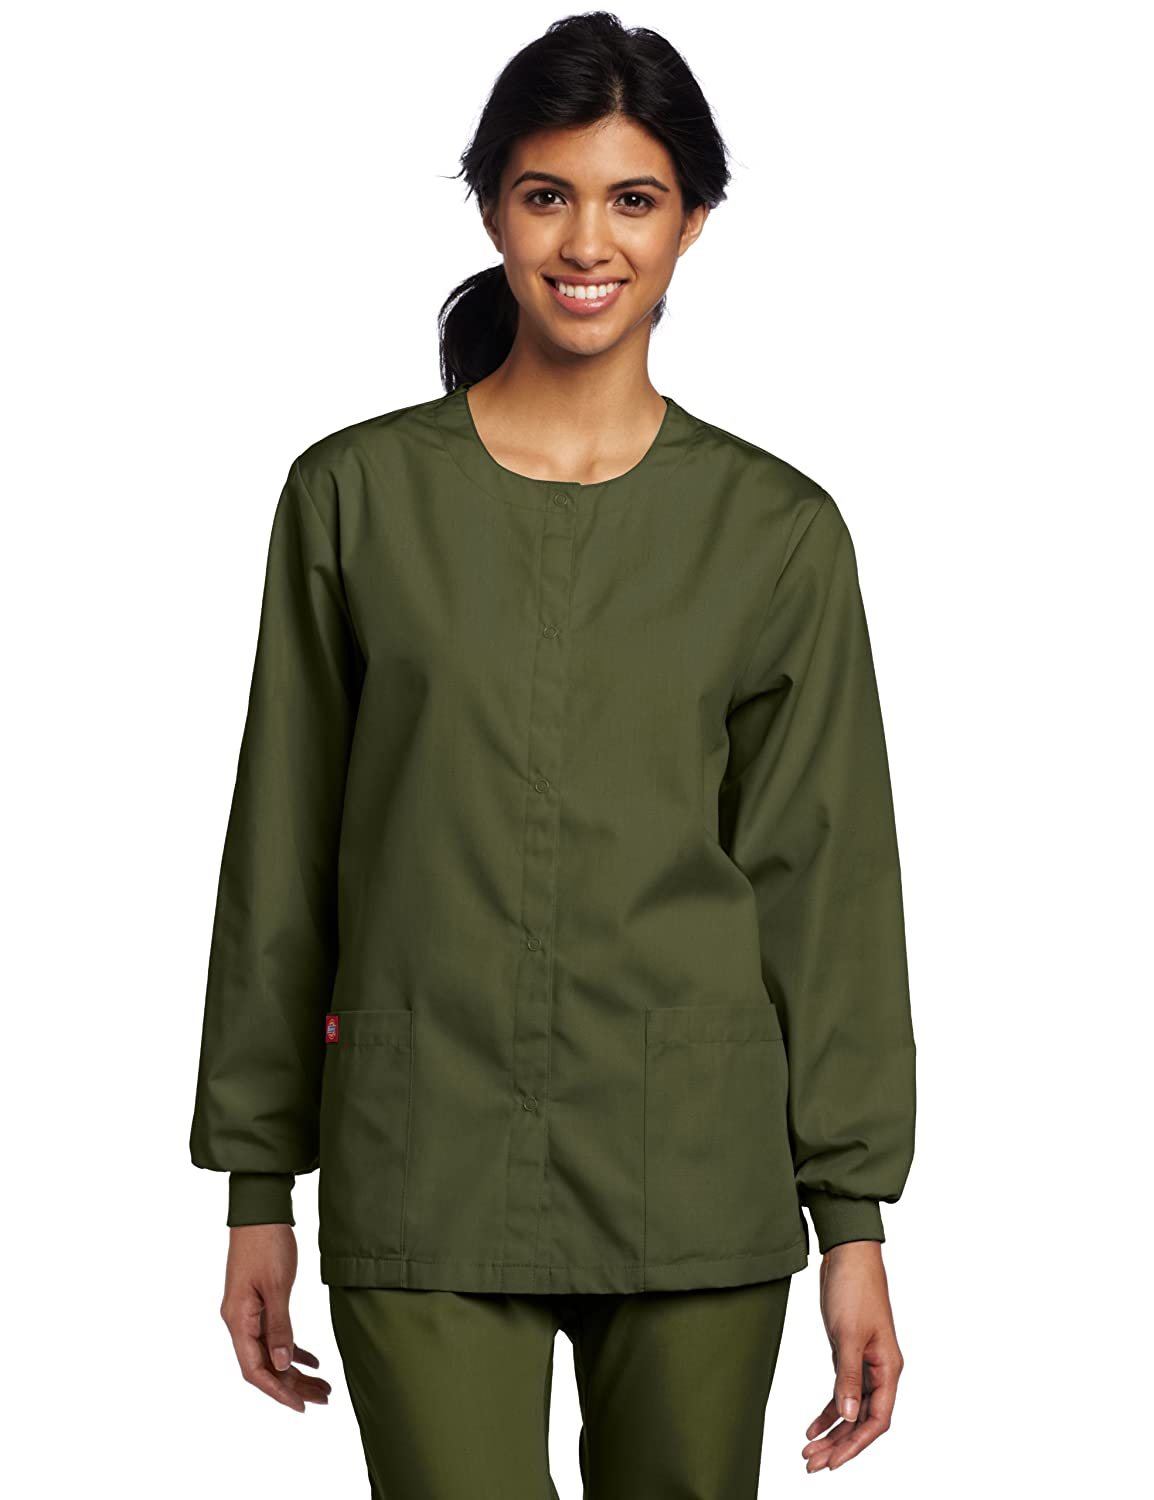 cf9955fc5e3 Amazon.com: Dickies Medical Scrubs 885306 Women's Missy Fit Every Day  Scrubs Round Neck Jacket: Clothing